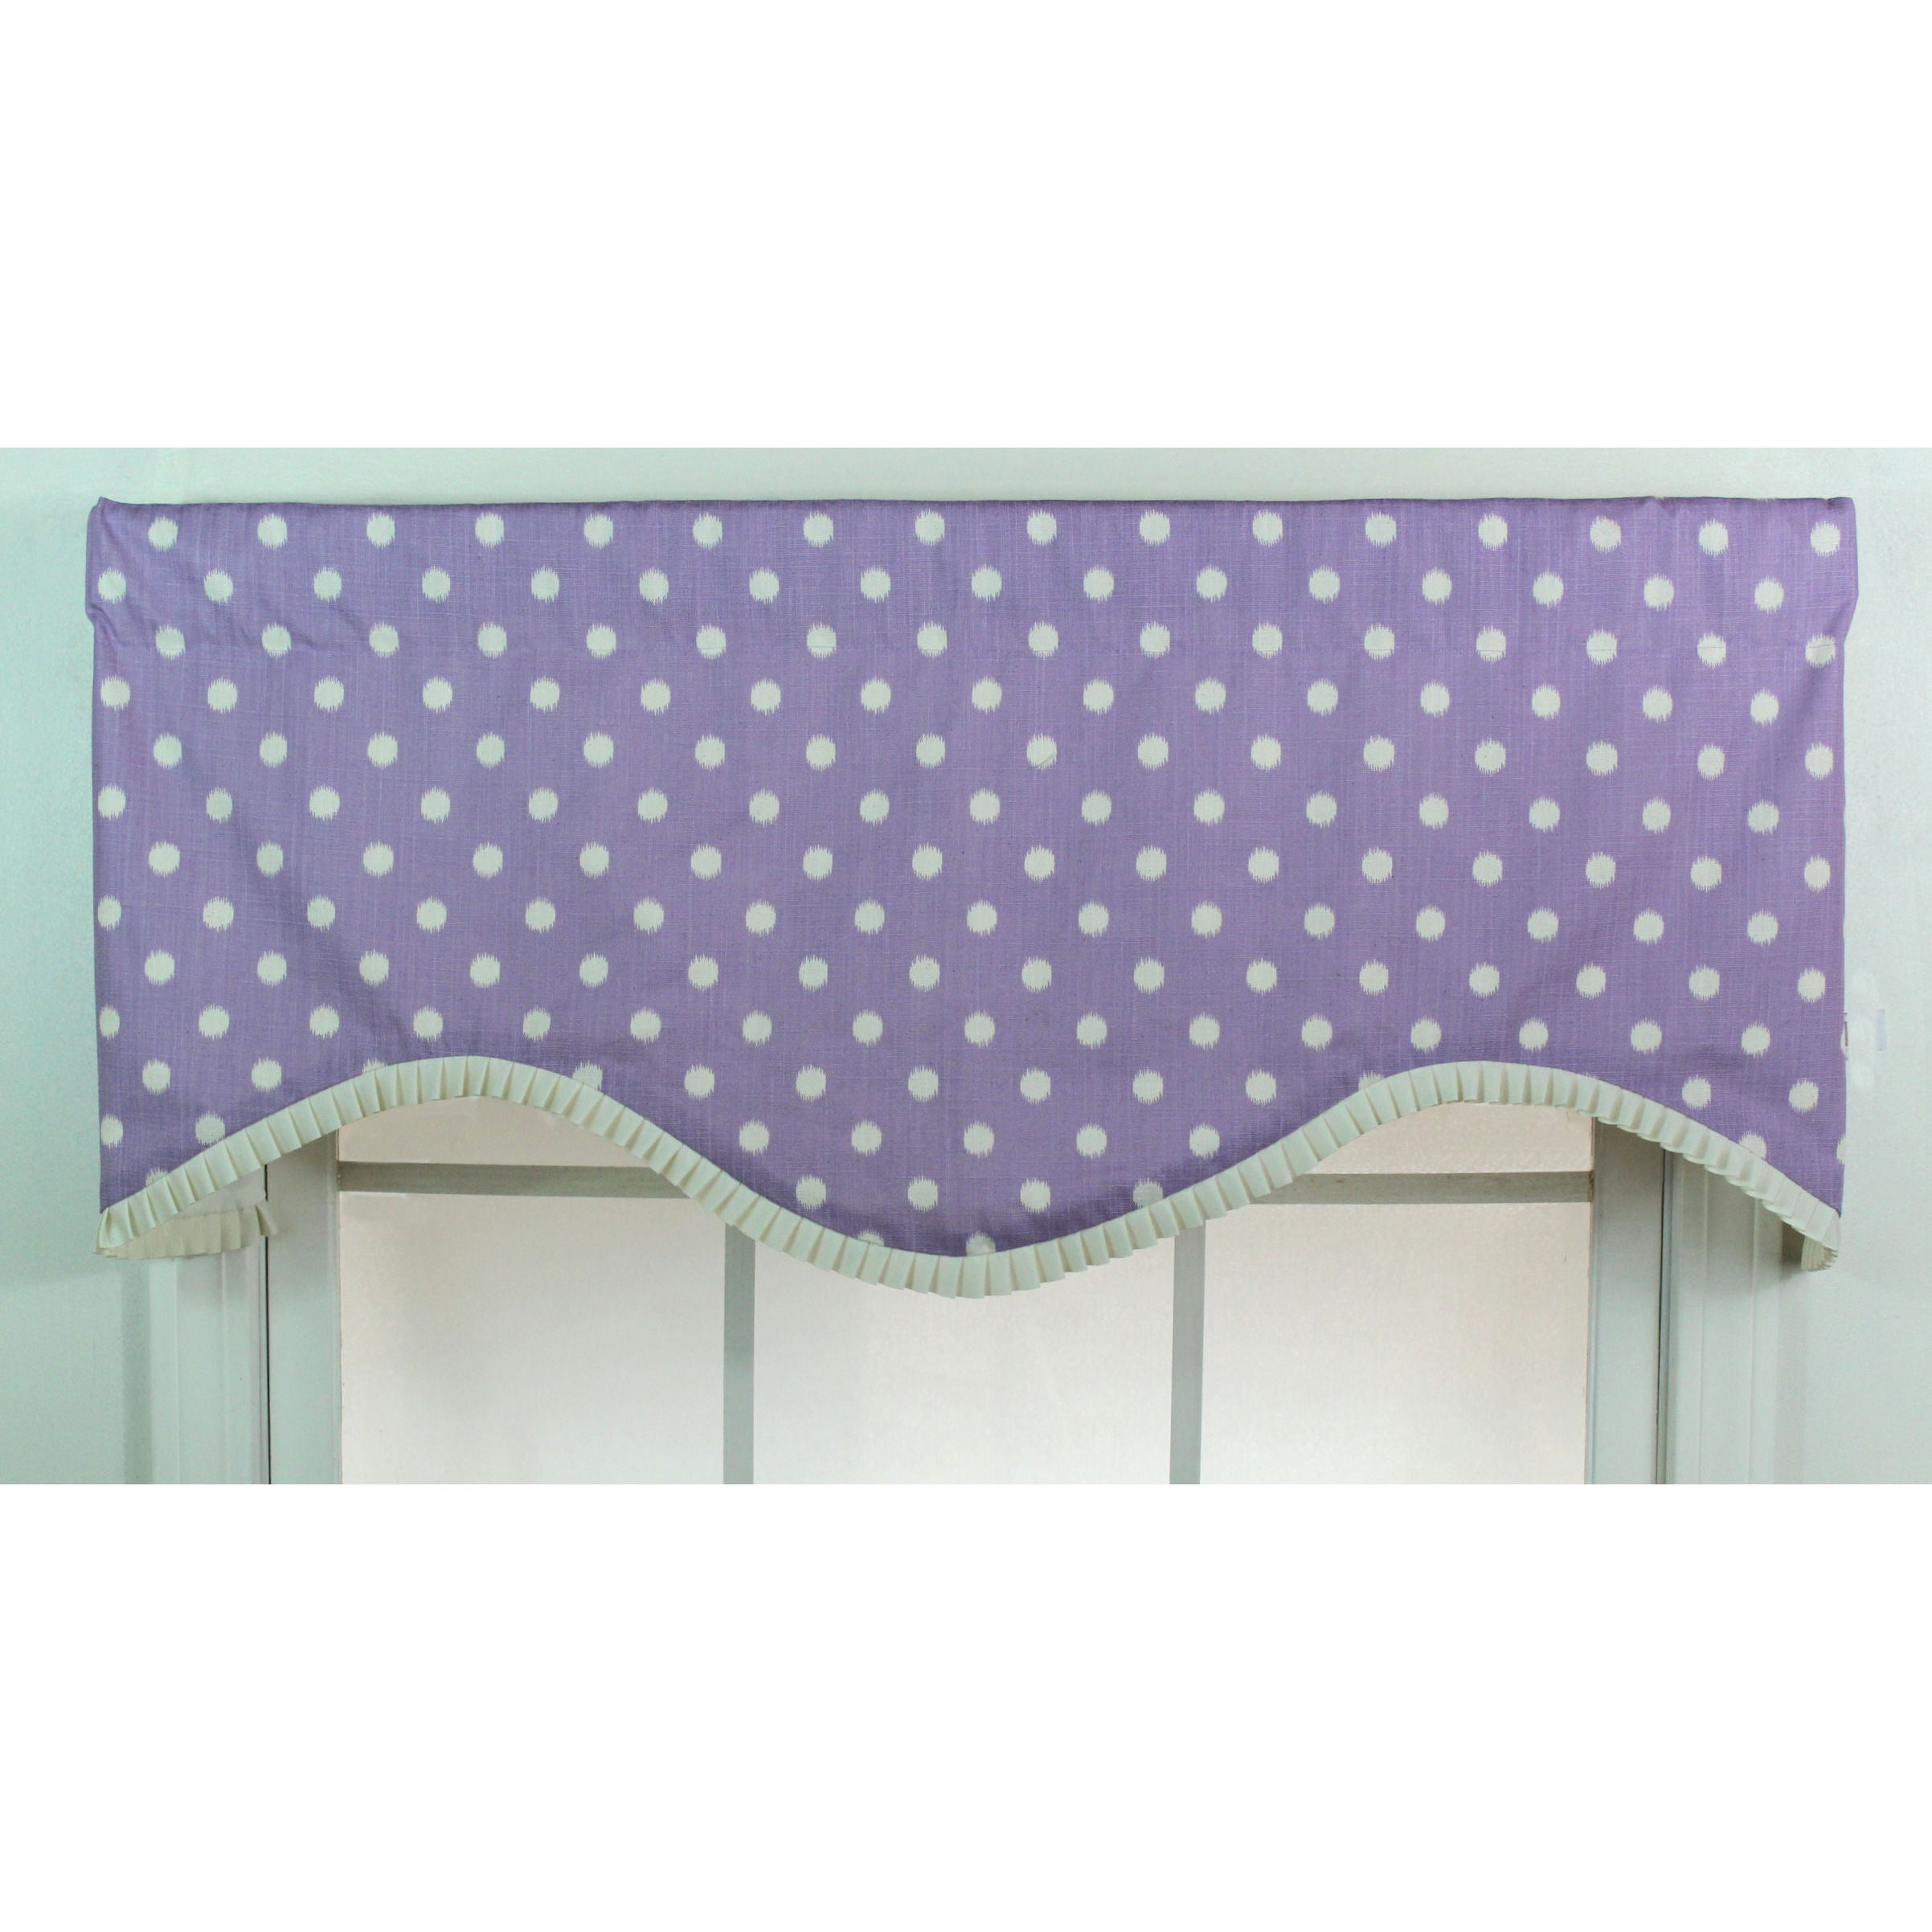 Rlf Home Ikat Dotty Lavendar Cornice Window Valance at Sears.com